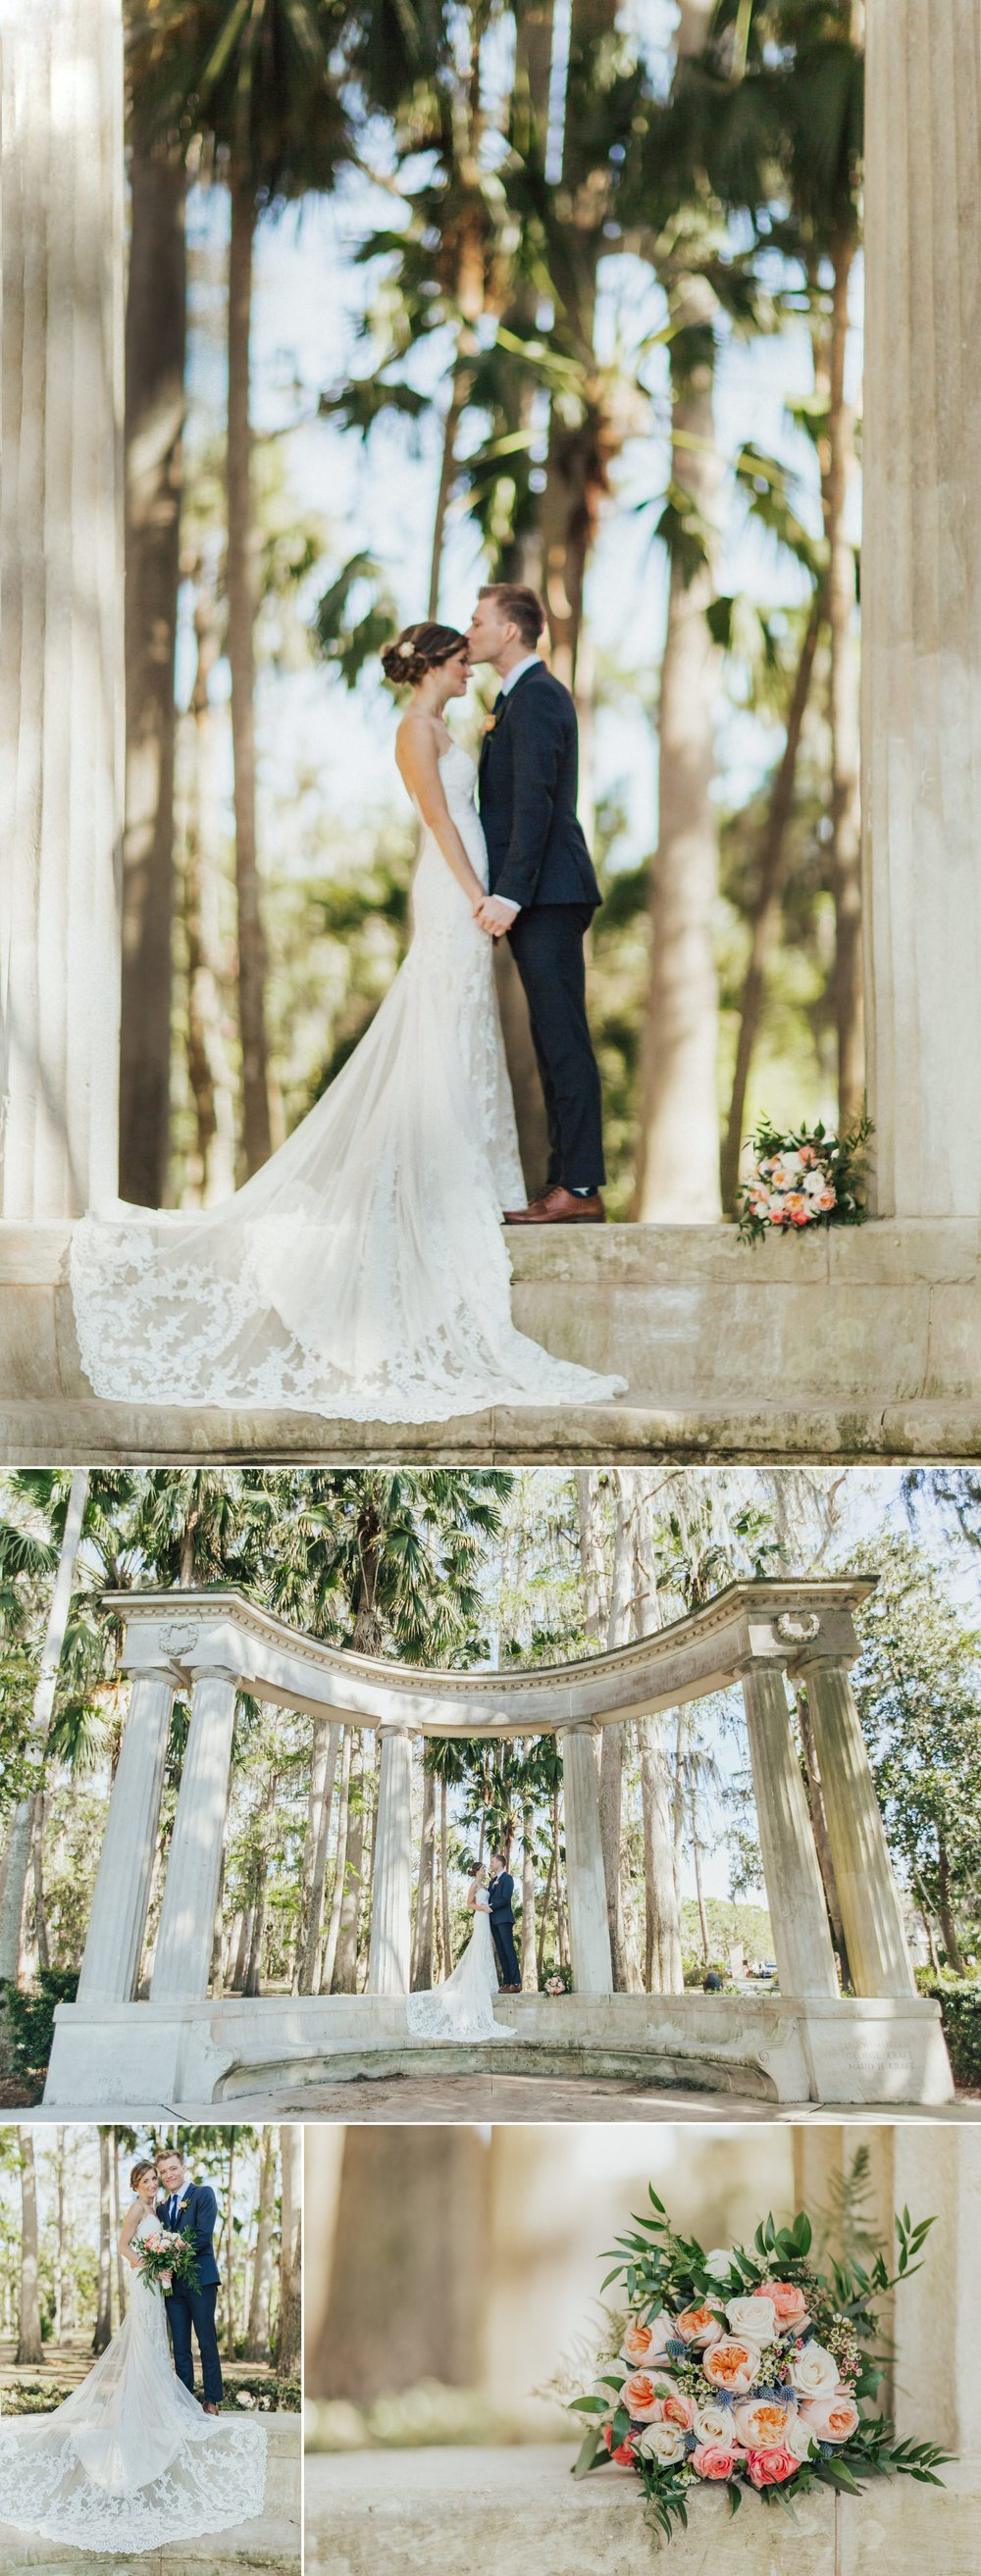 Winter Park farmers market wedding- bohemian chic floral wedding photography by Shaina DeCiryan11.jpg